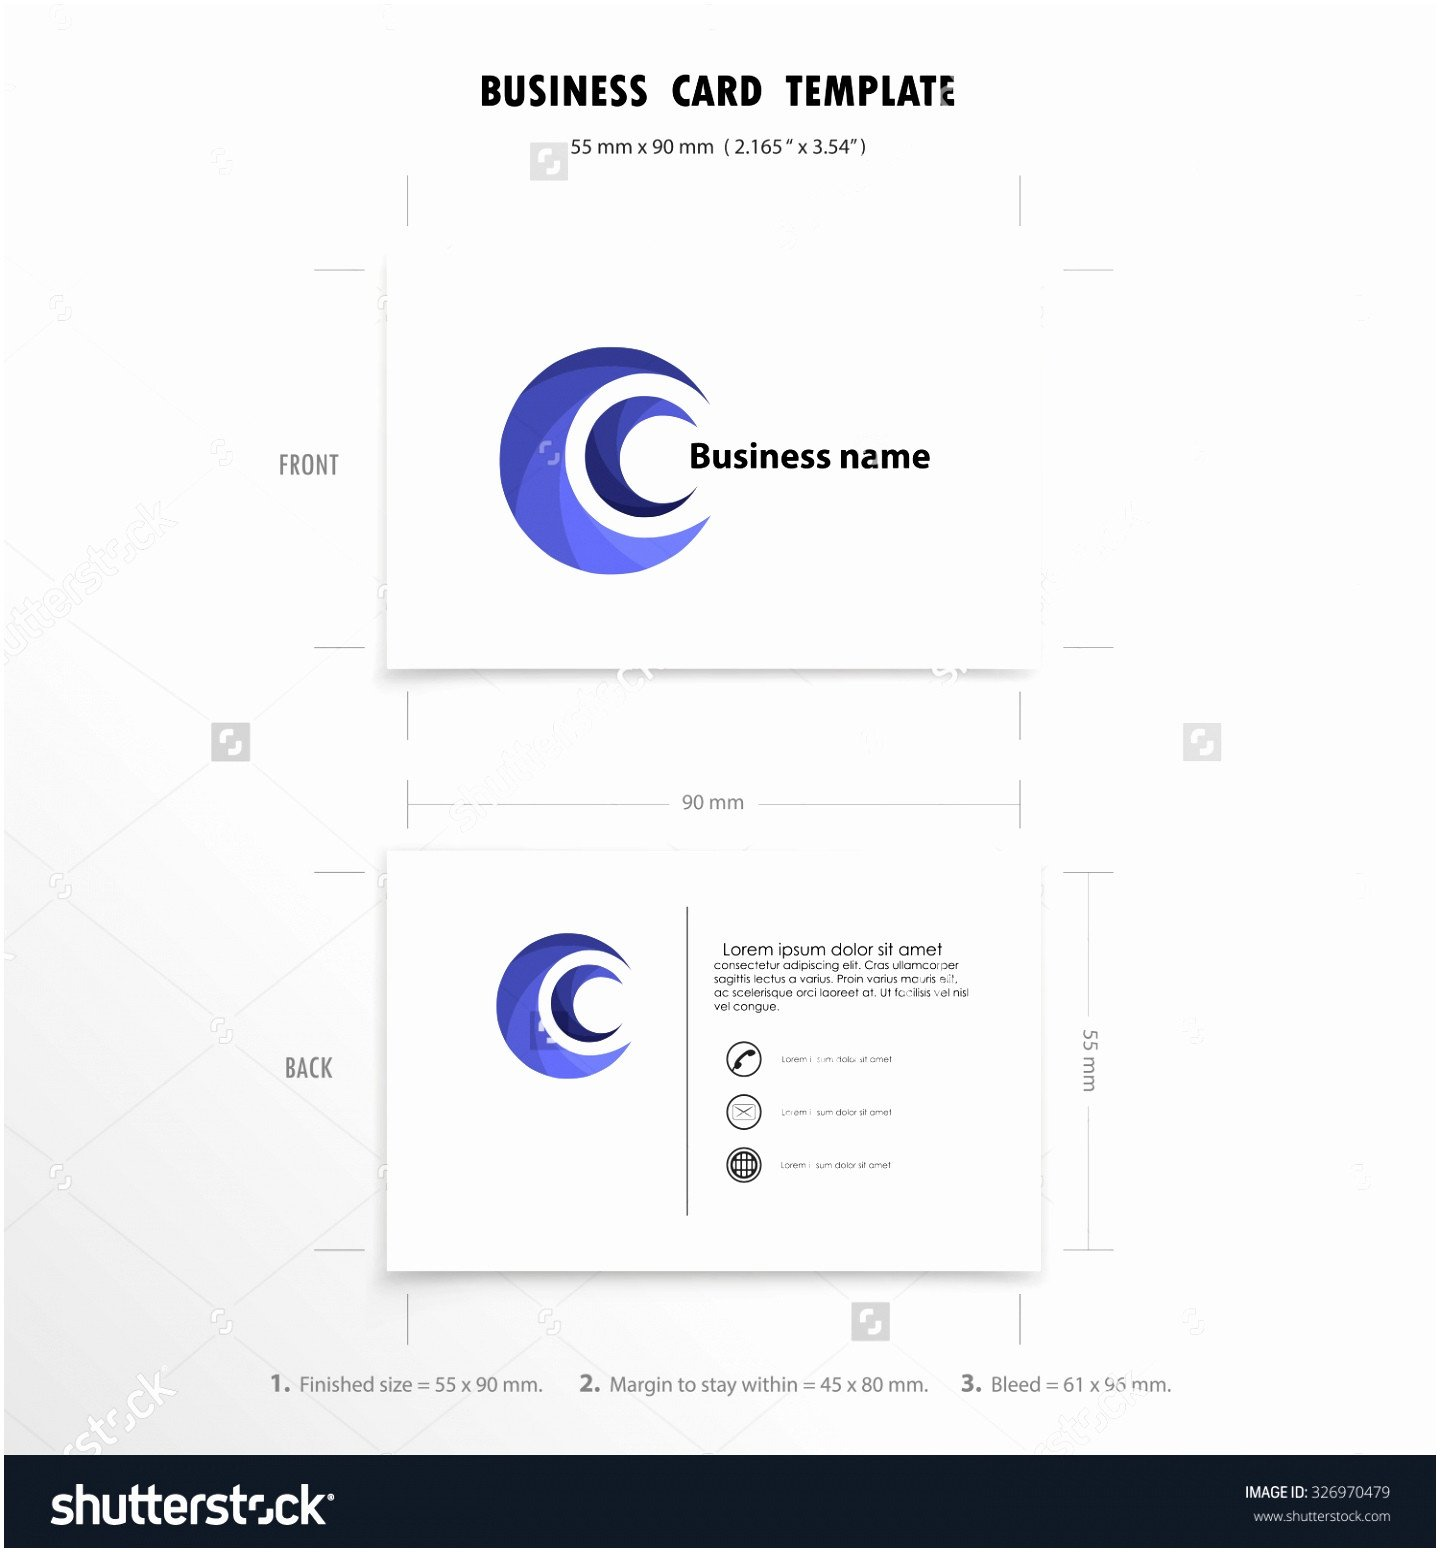 Excel Business Card Template 8 Name Card Size Template Qooye